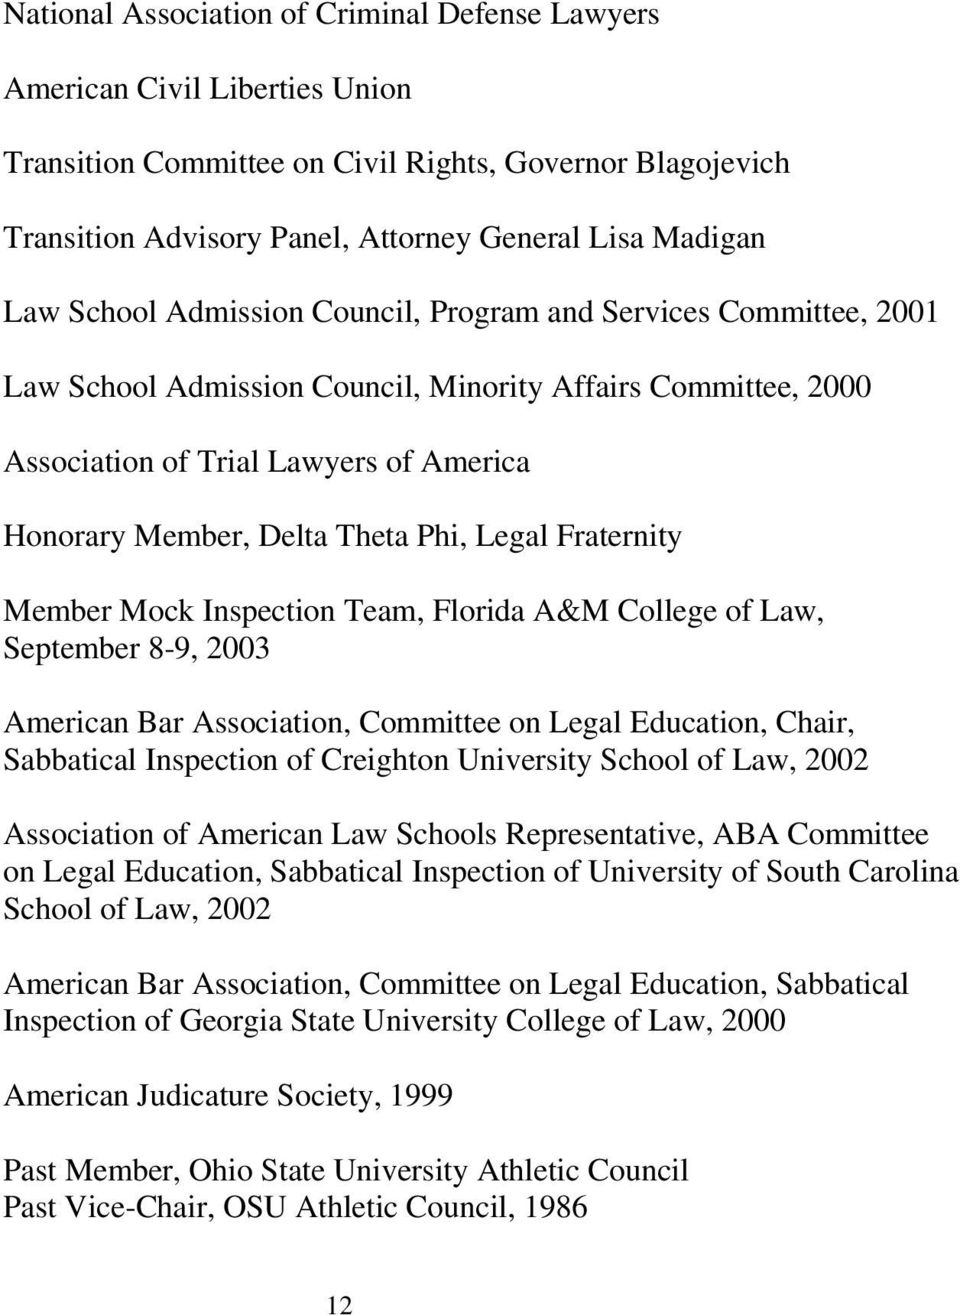 Legal Fraternity Member Mock Inspection Team, Florida A&M College of Law, September 8-9, 2003 American Bar Association, Committee on Legal Education, Chair, Sabbatical Inspection of Creighton